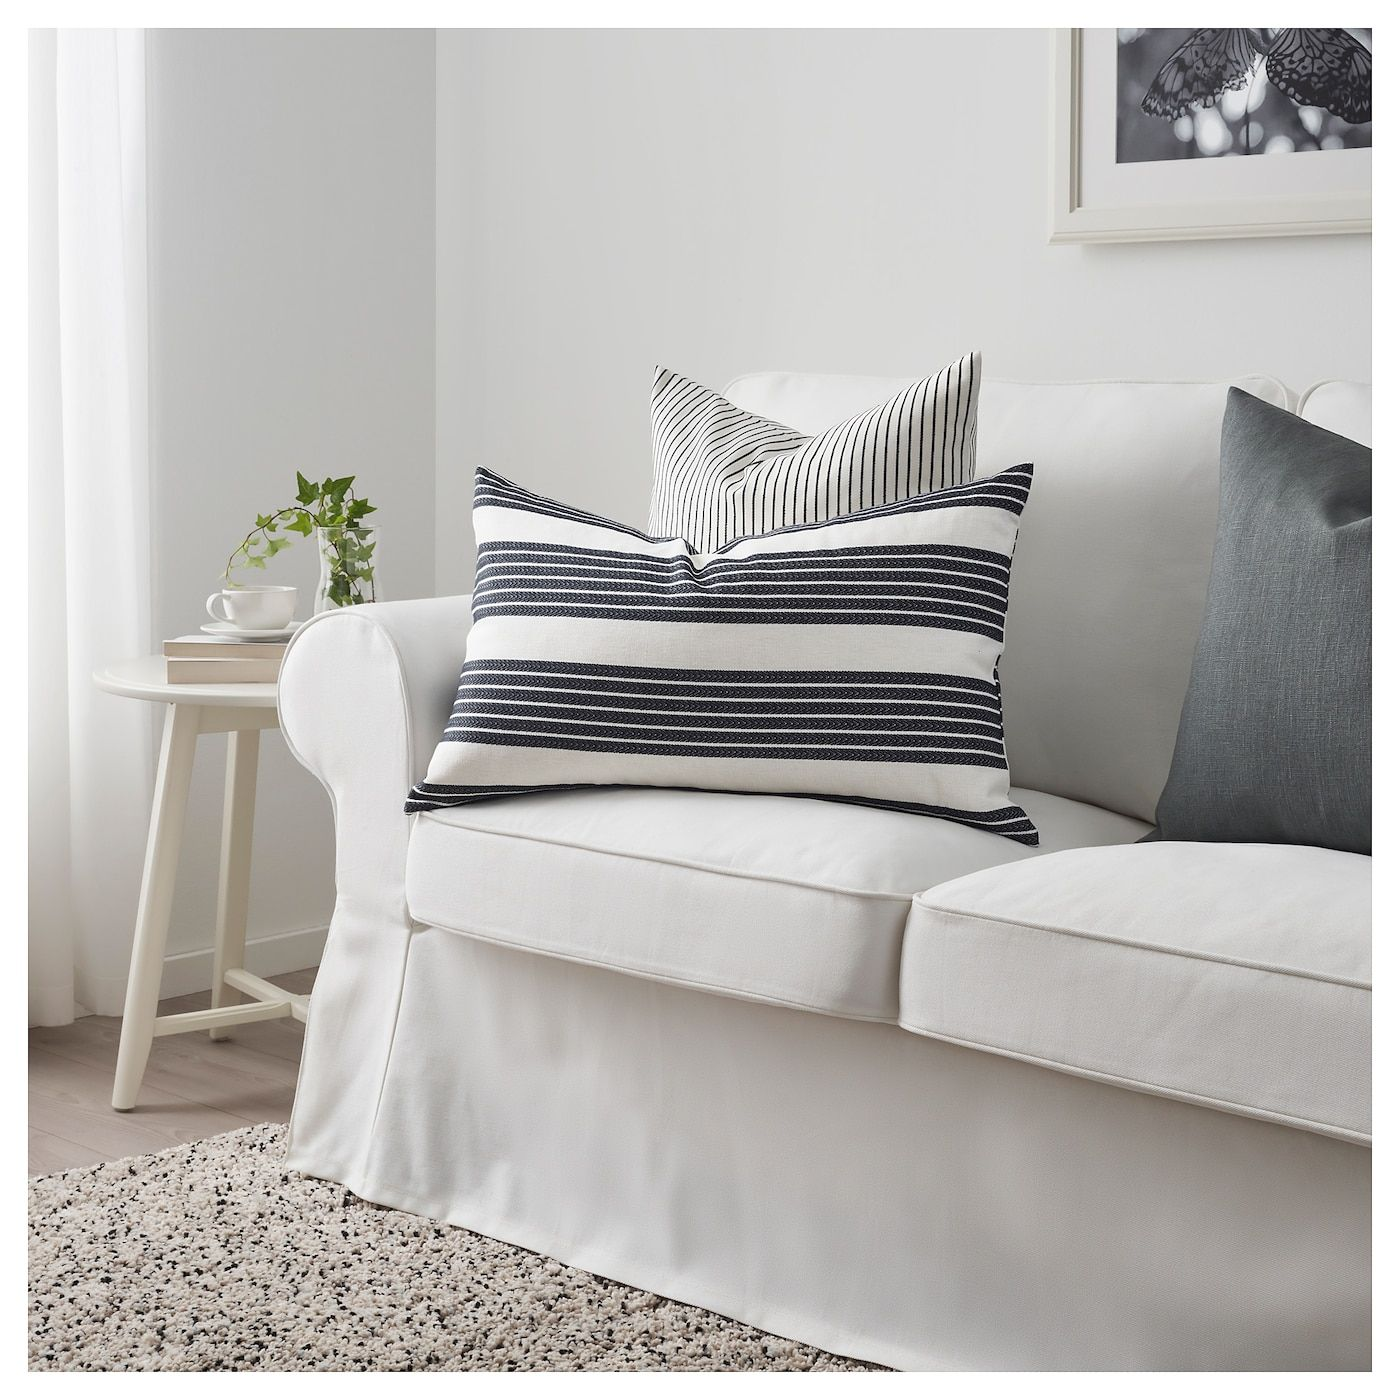 IKEA METTALISE Cushion cover white, dark gray Ikea